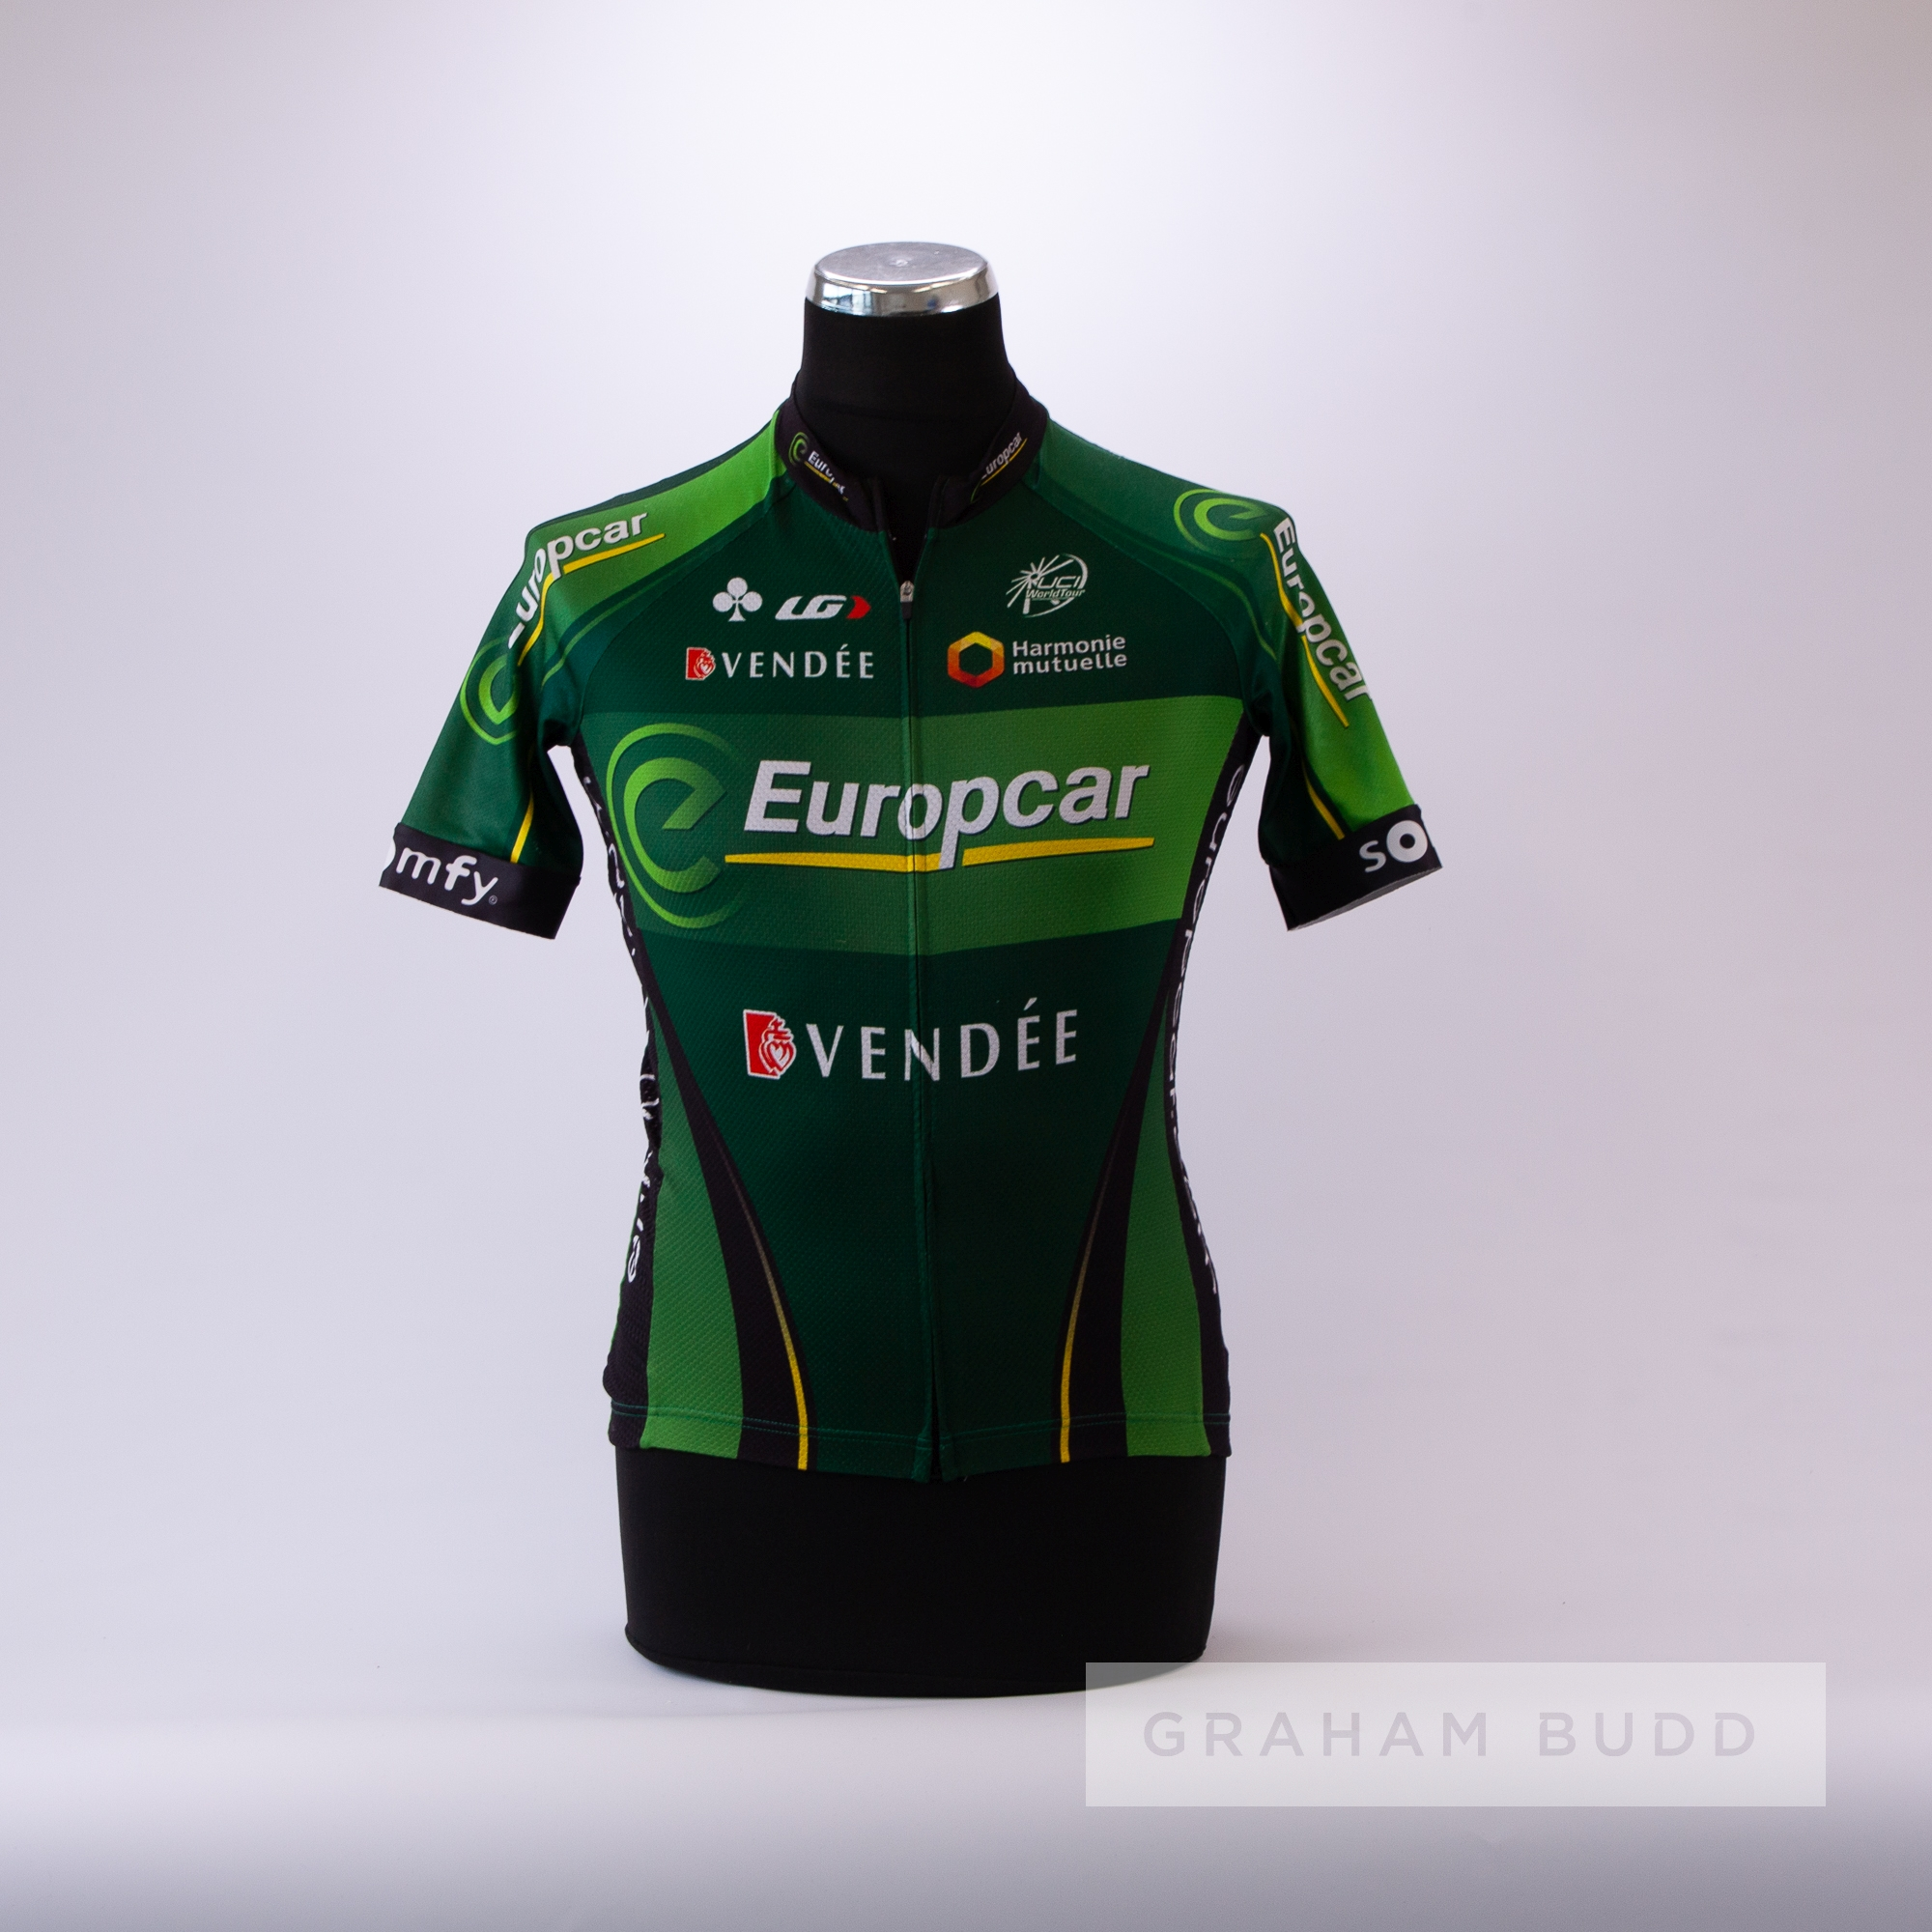 2011 green, black and yellow French Europcar Cycling team race jersey, scarce, polyester short- - Image 3 of 4